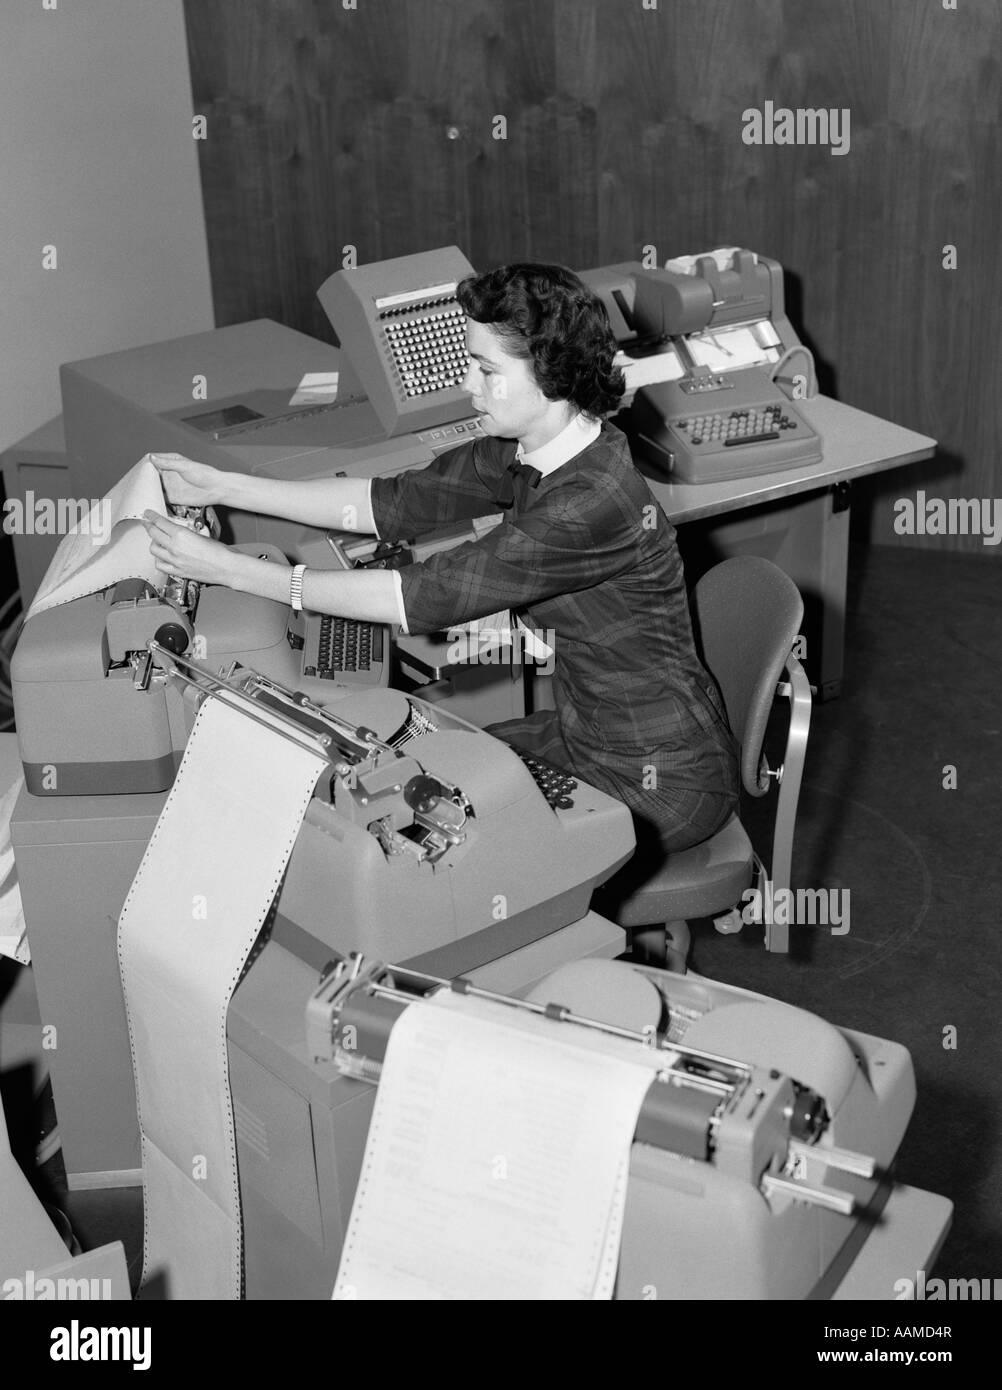 1950s WOMAN AT WORK STATION SURROUNDED BY ACCOUNTING MACHINES SPEWING OUT PAPER - Stock Image